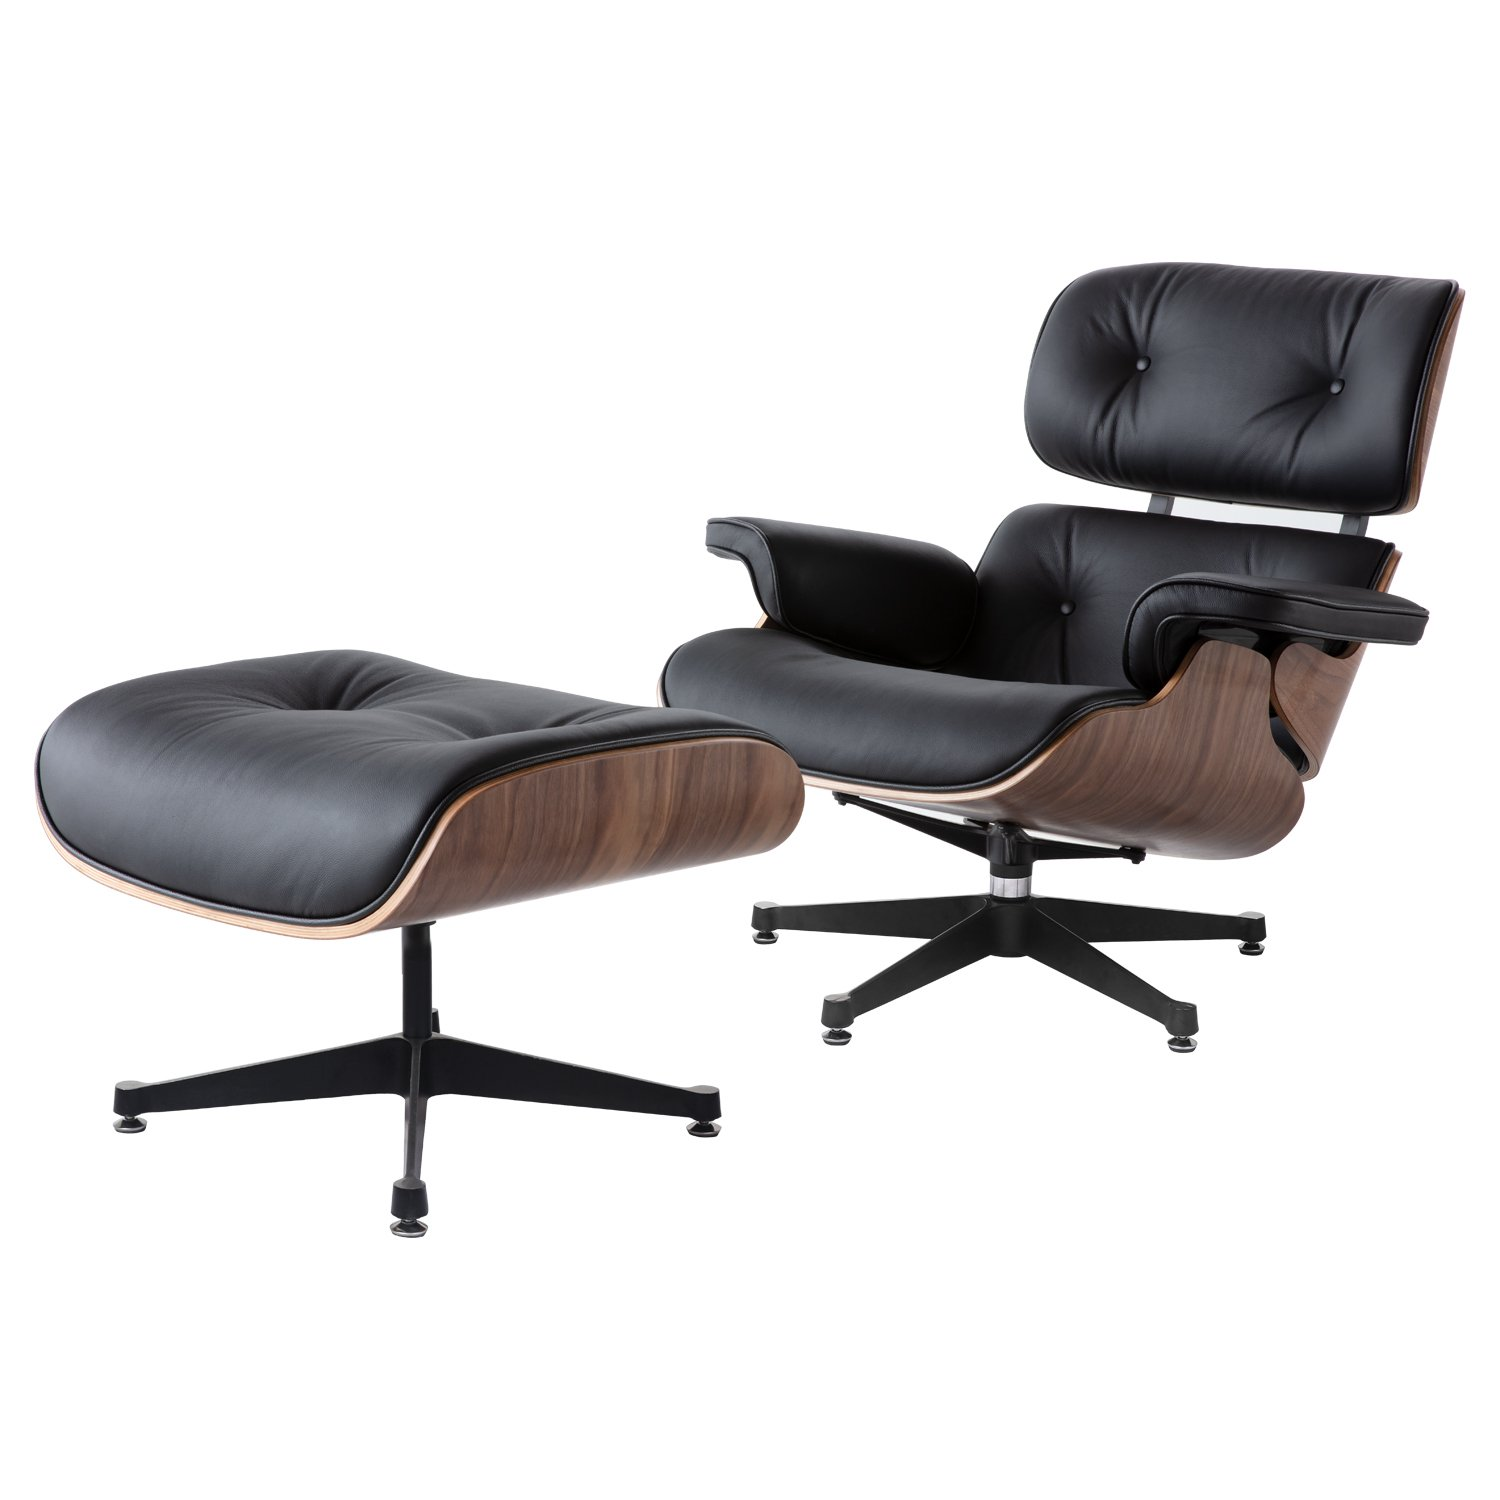 Charles Eames Lounge Chair Charles Eames Lounge Chair And Ottoman Replica - Black - Walnut Wood - Elephant Base - Decomica - As A Brand Known For Quality And Excellent Service